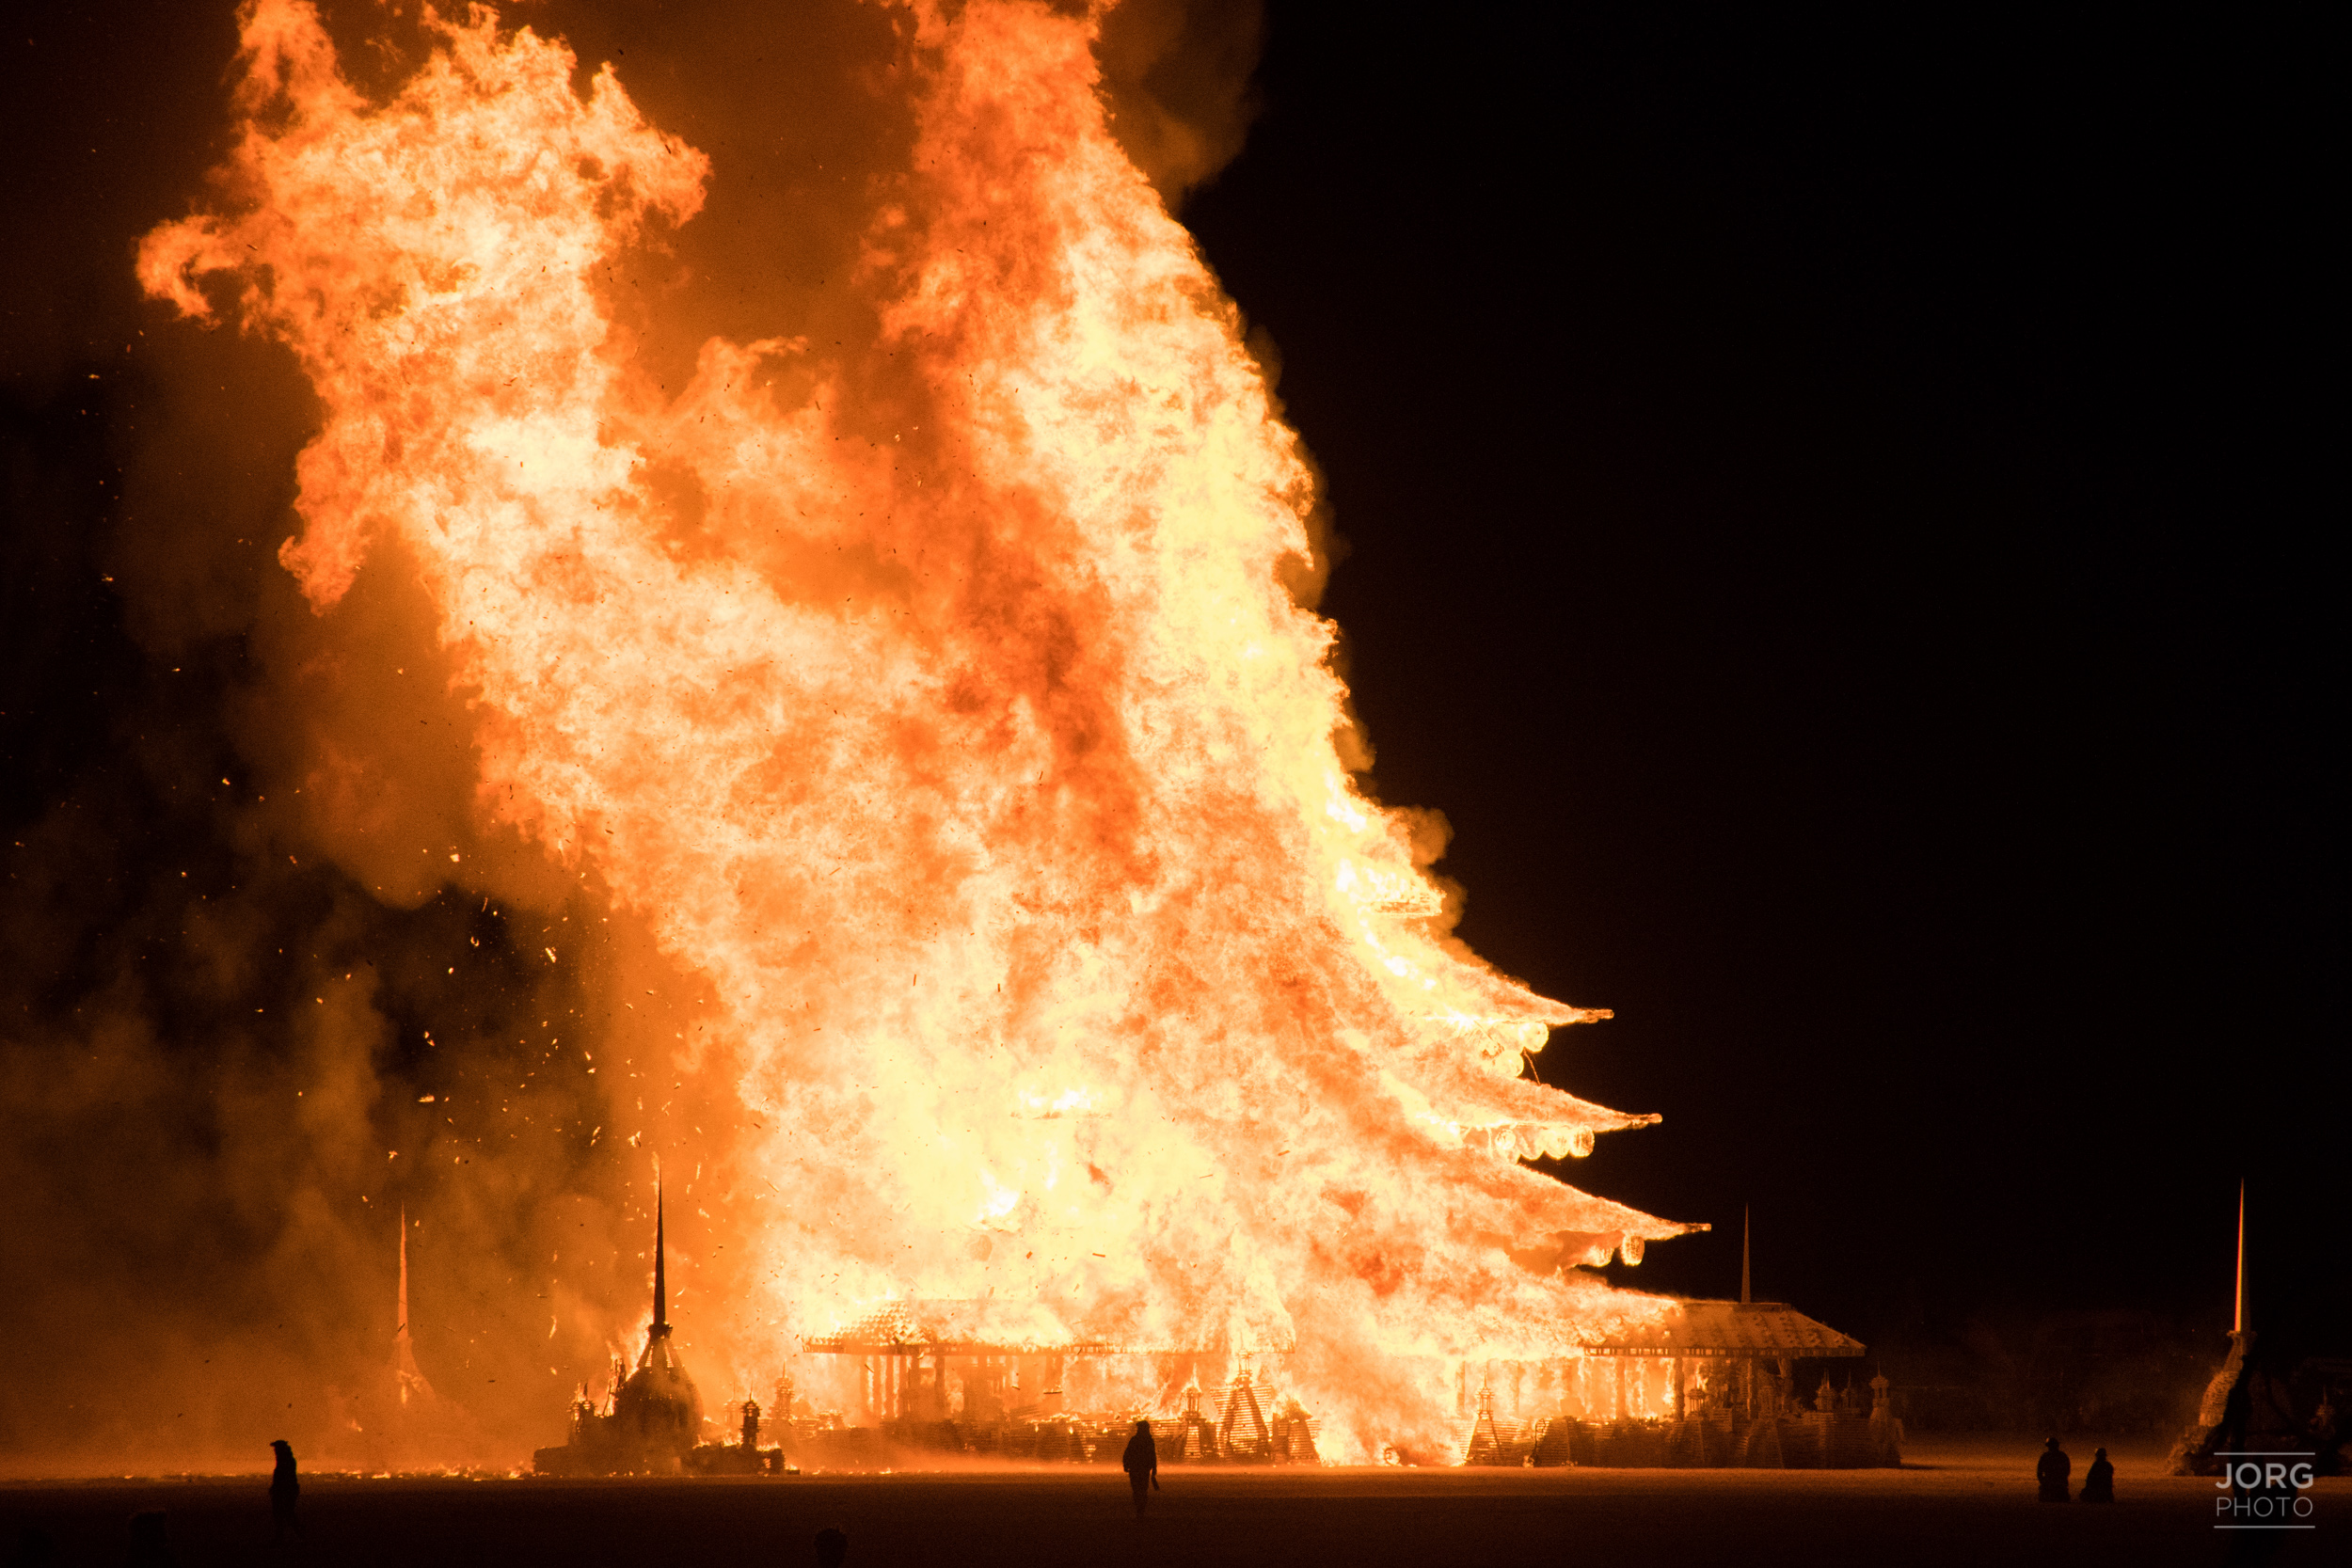 burning_man_2016_jorgphoto_40